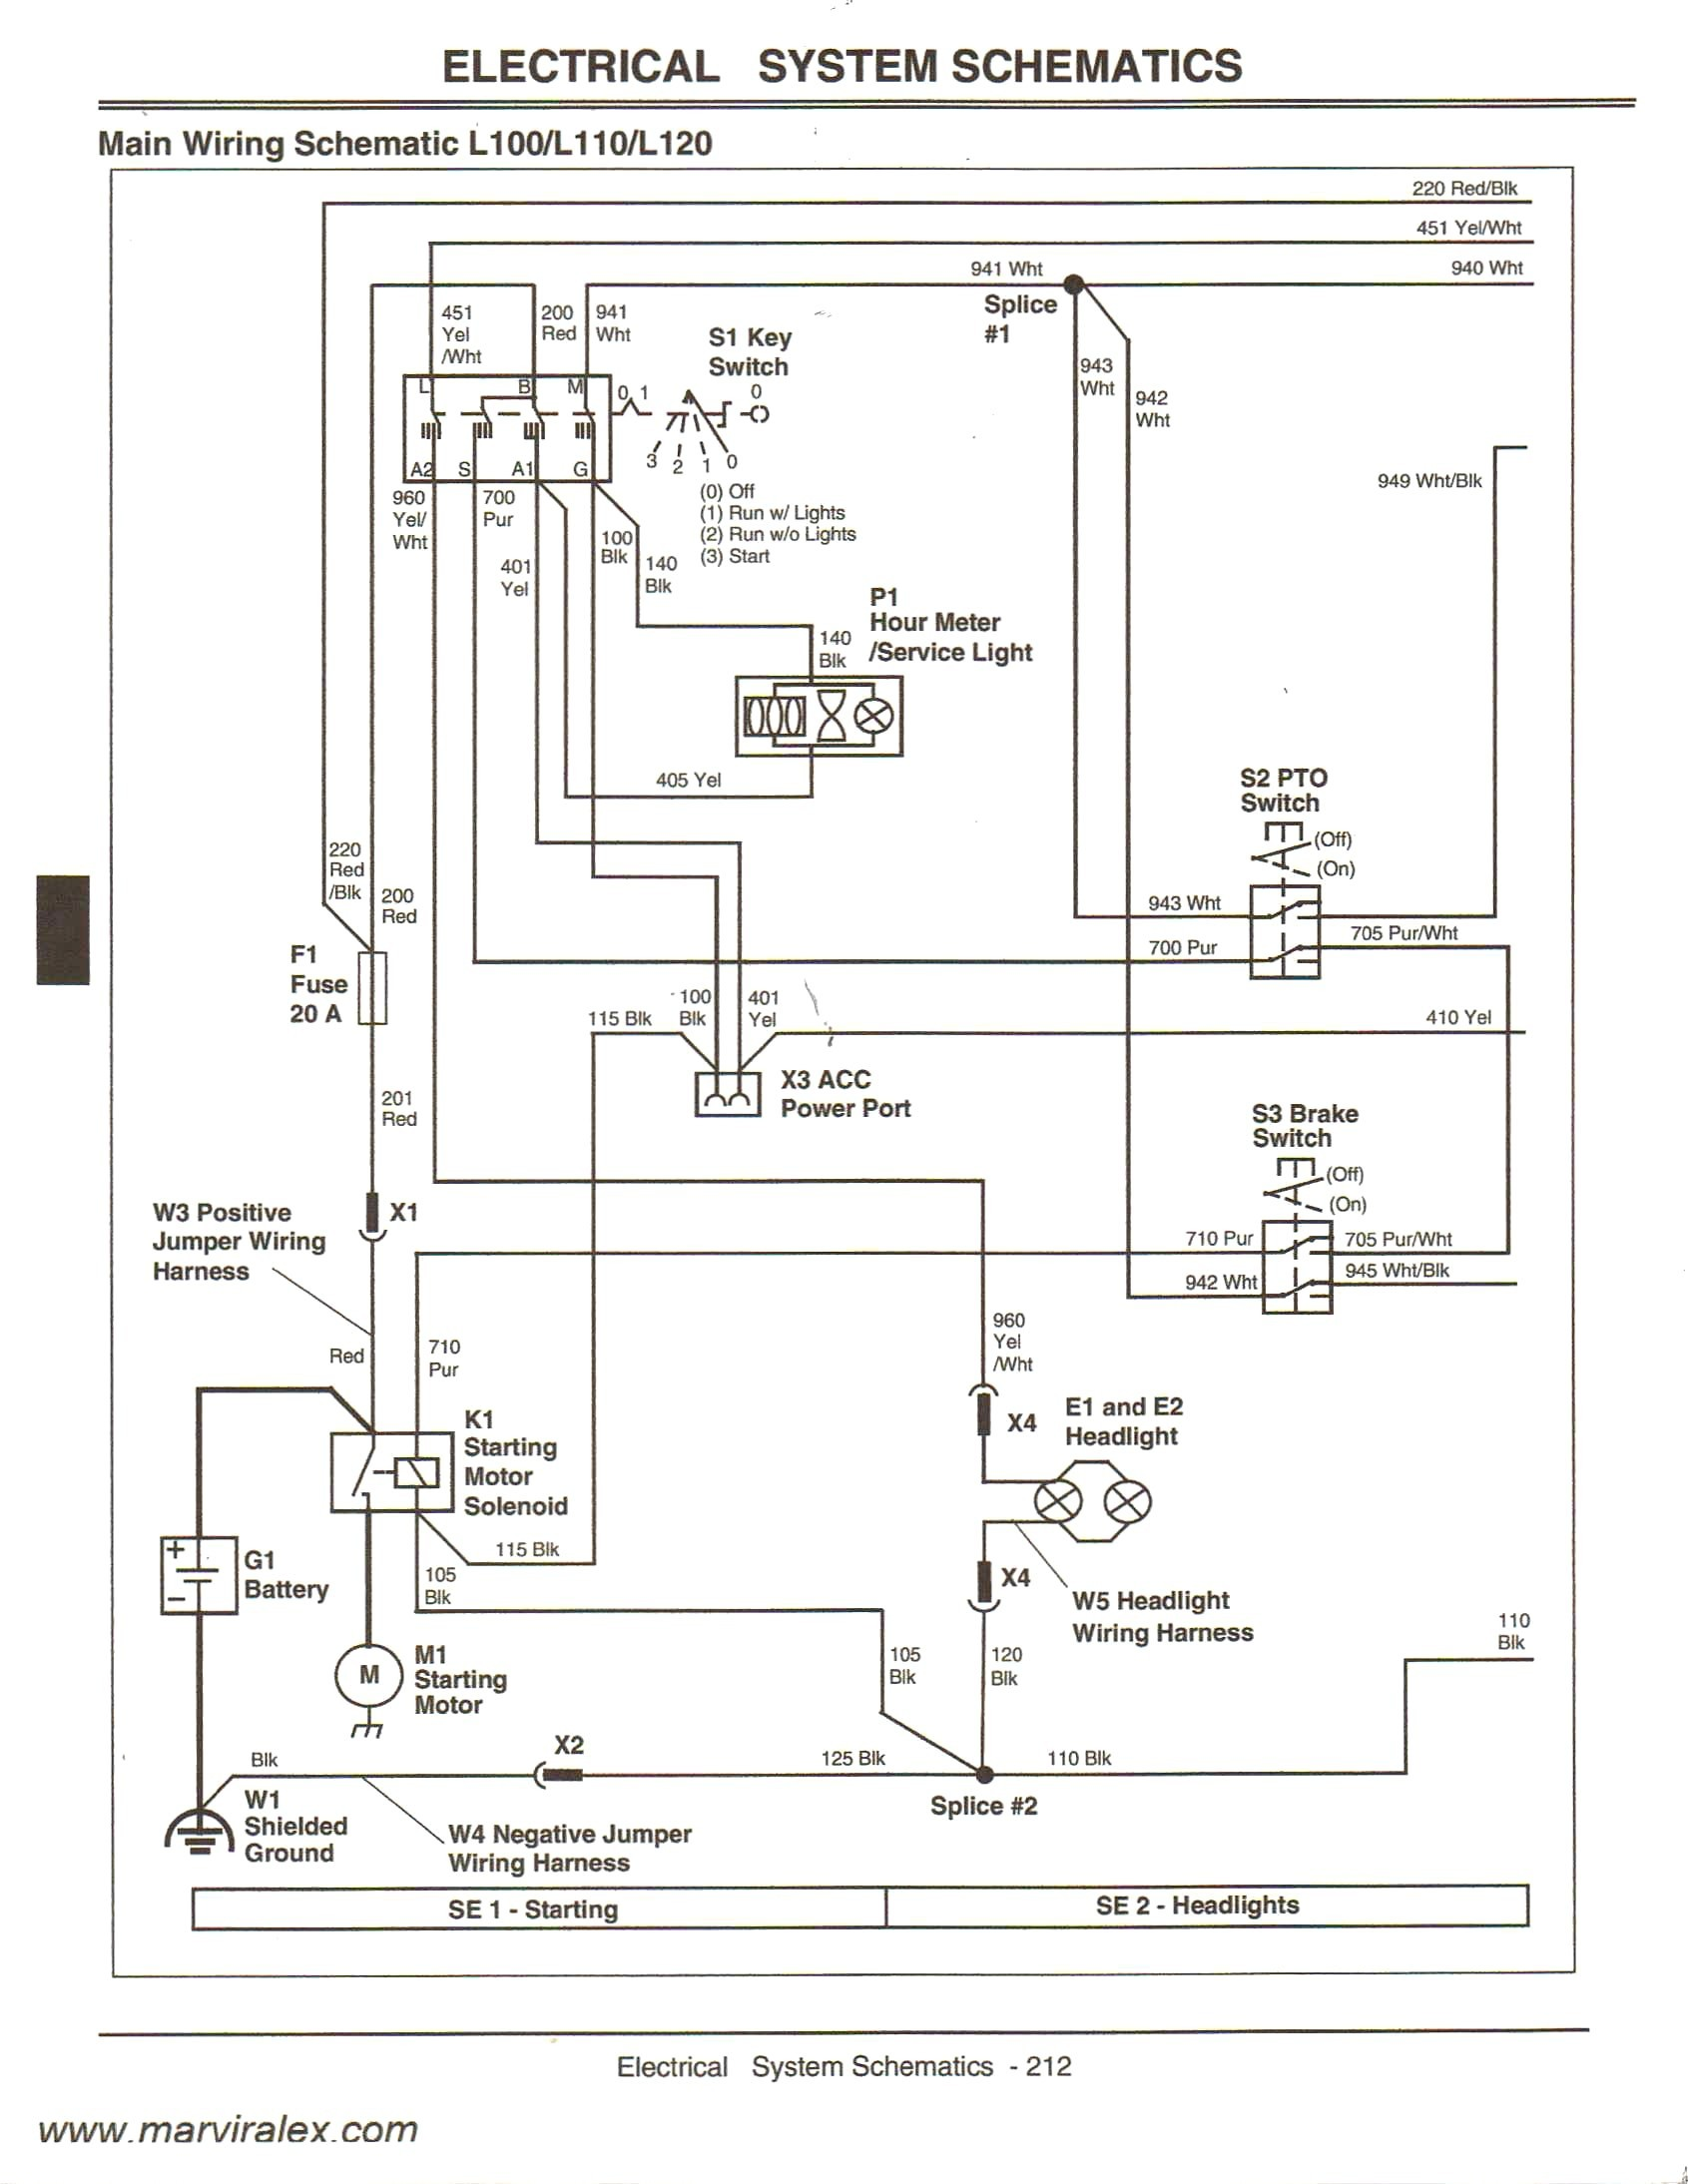 john deere x740 wiring diagram data diagram schematicx748 wiring diagram wiring diagram john deere x740 wiring diagram john deere x740 wiring diagram